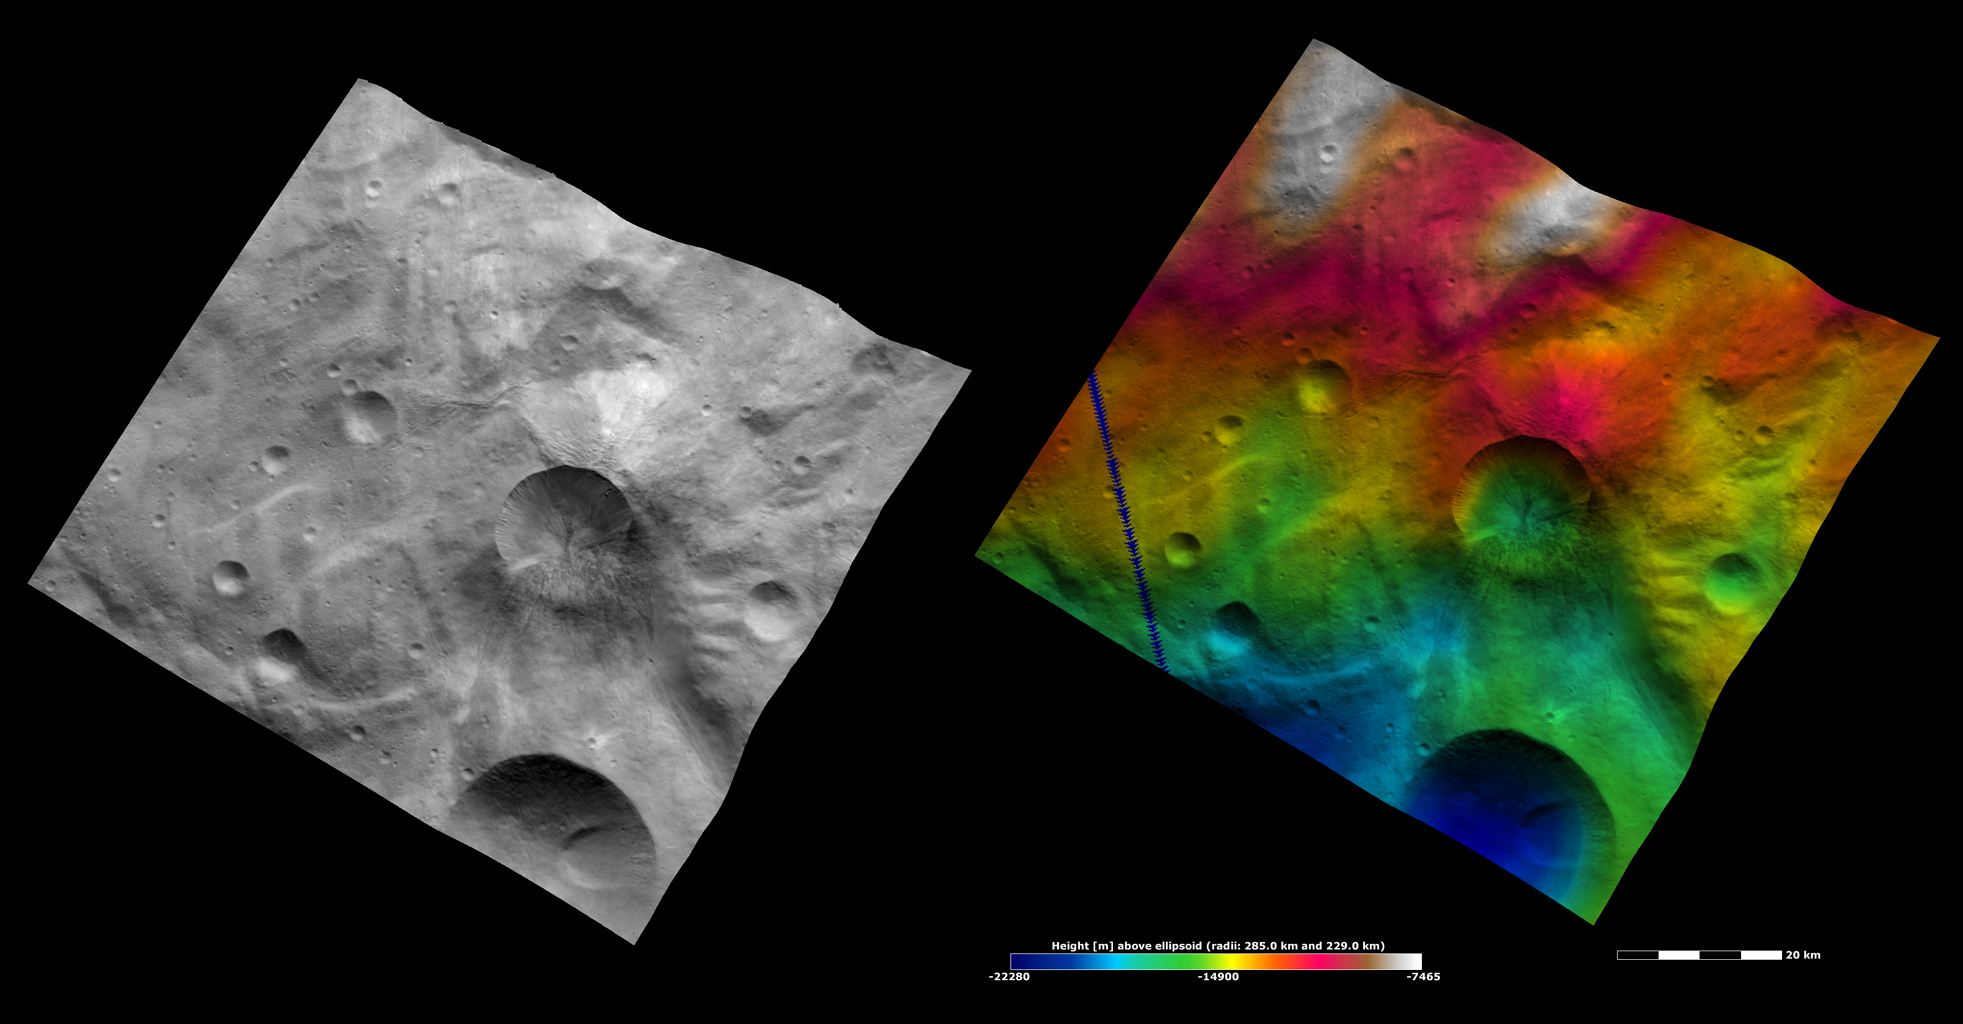 Apparent Brightness and Topography Images of Antonia Crater